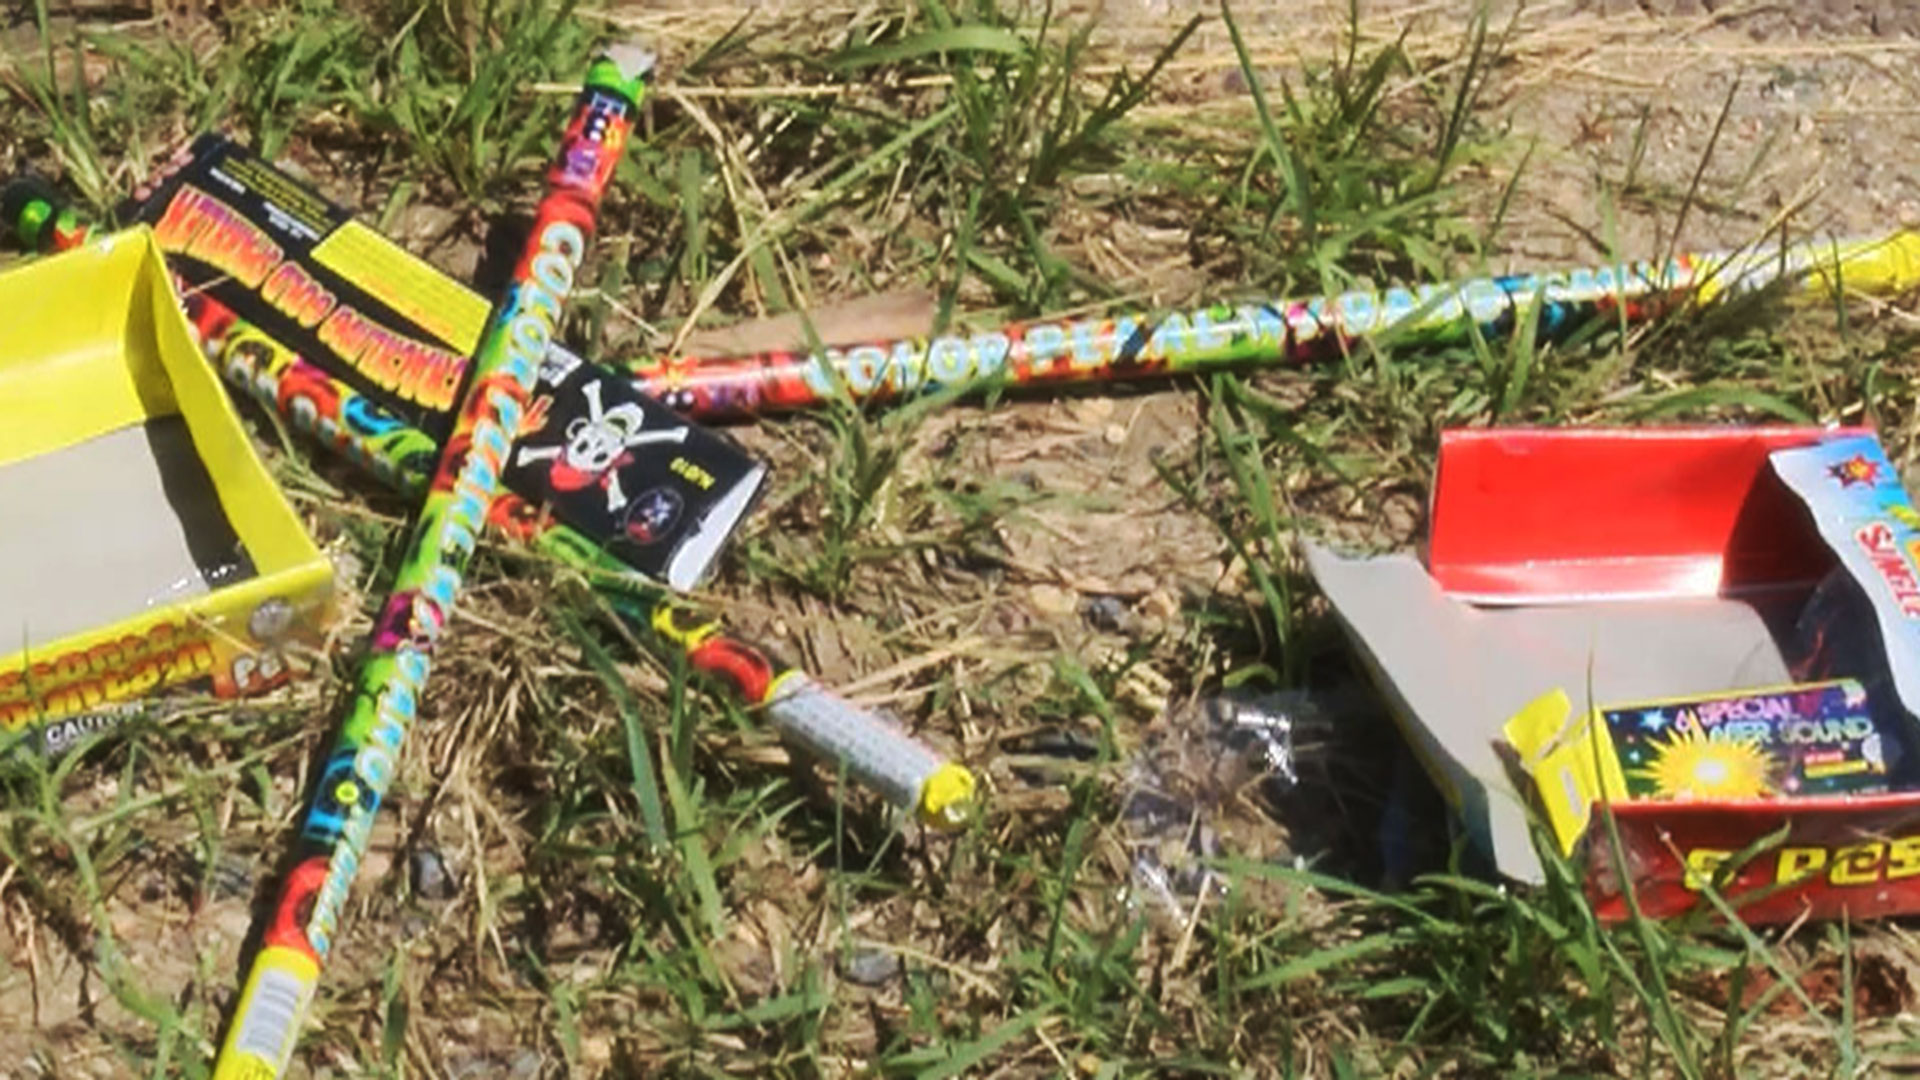 KELO fireworks trash rockets litter